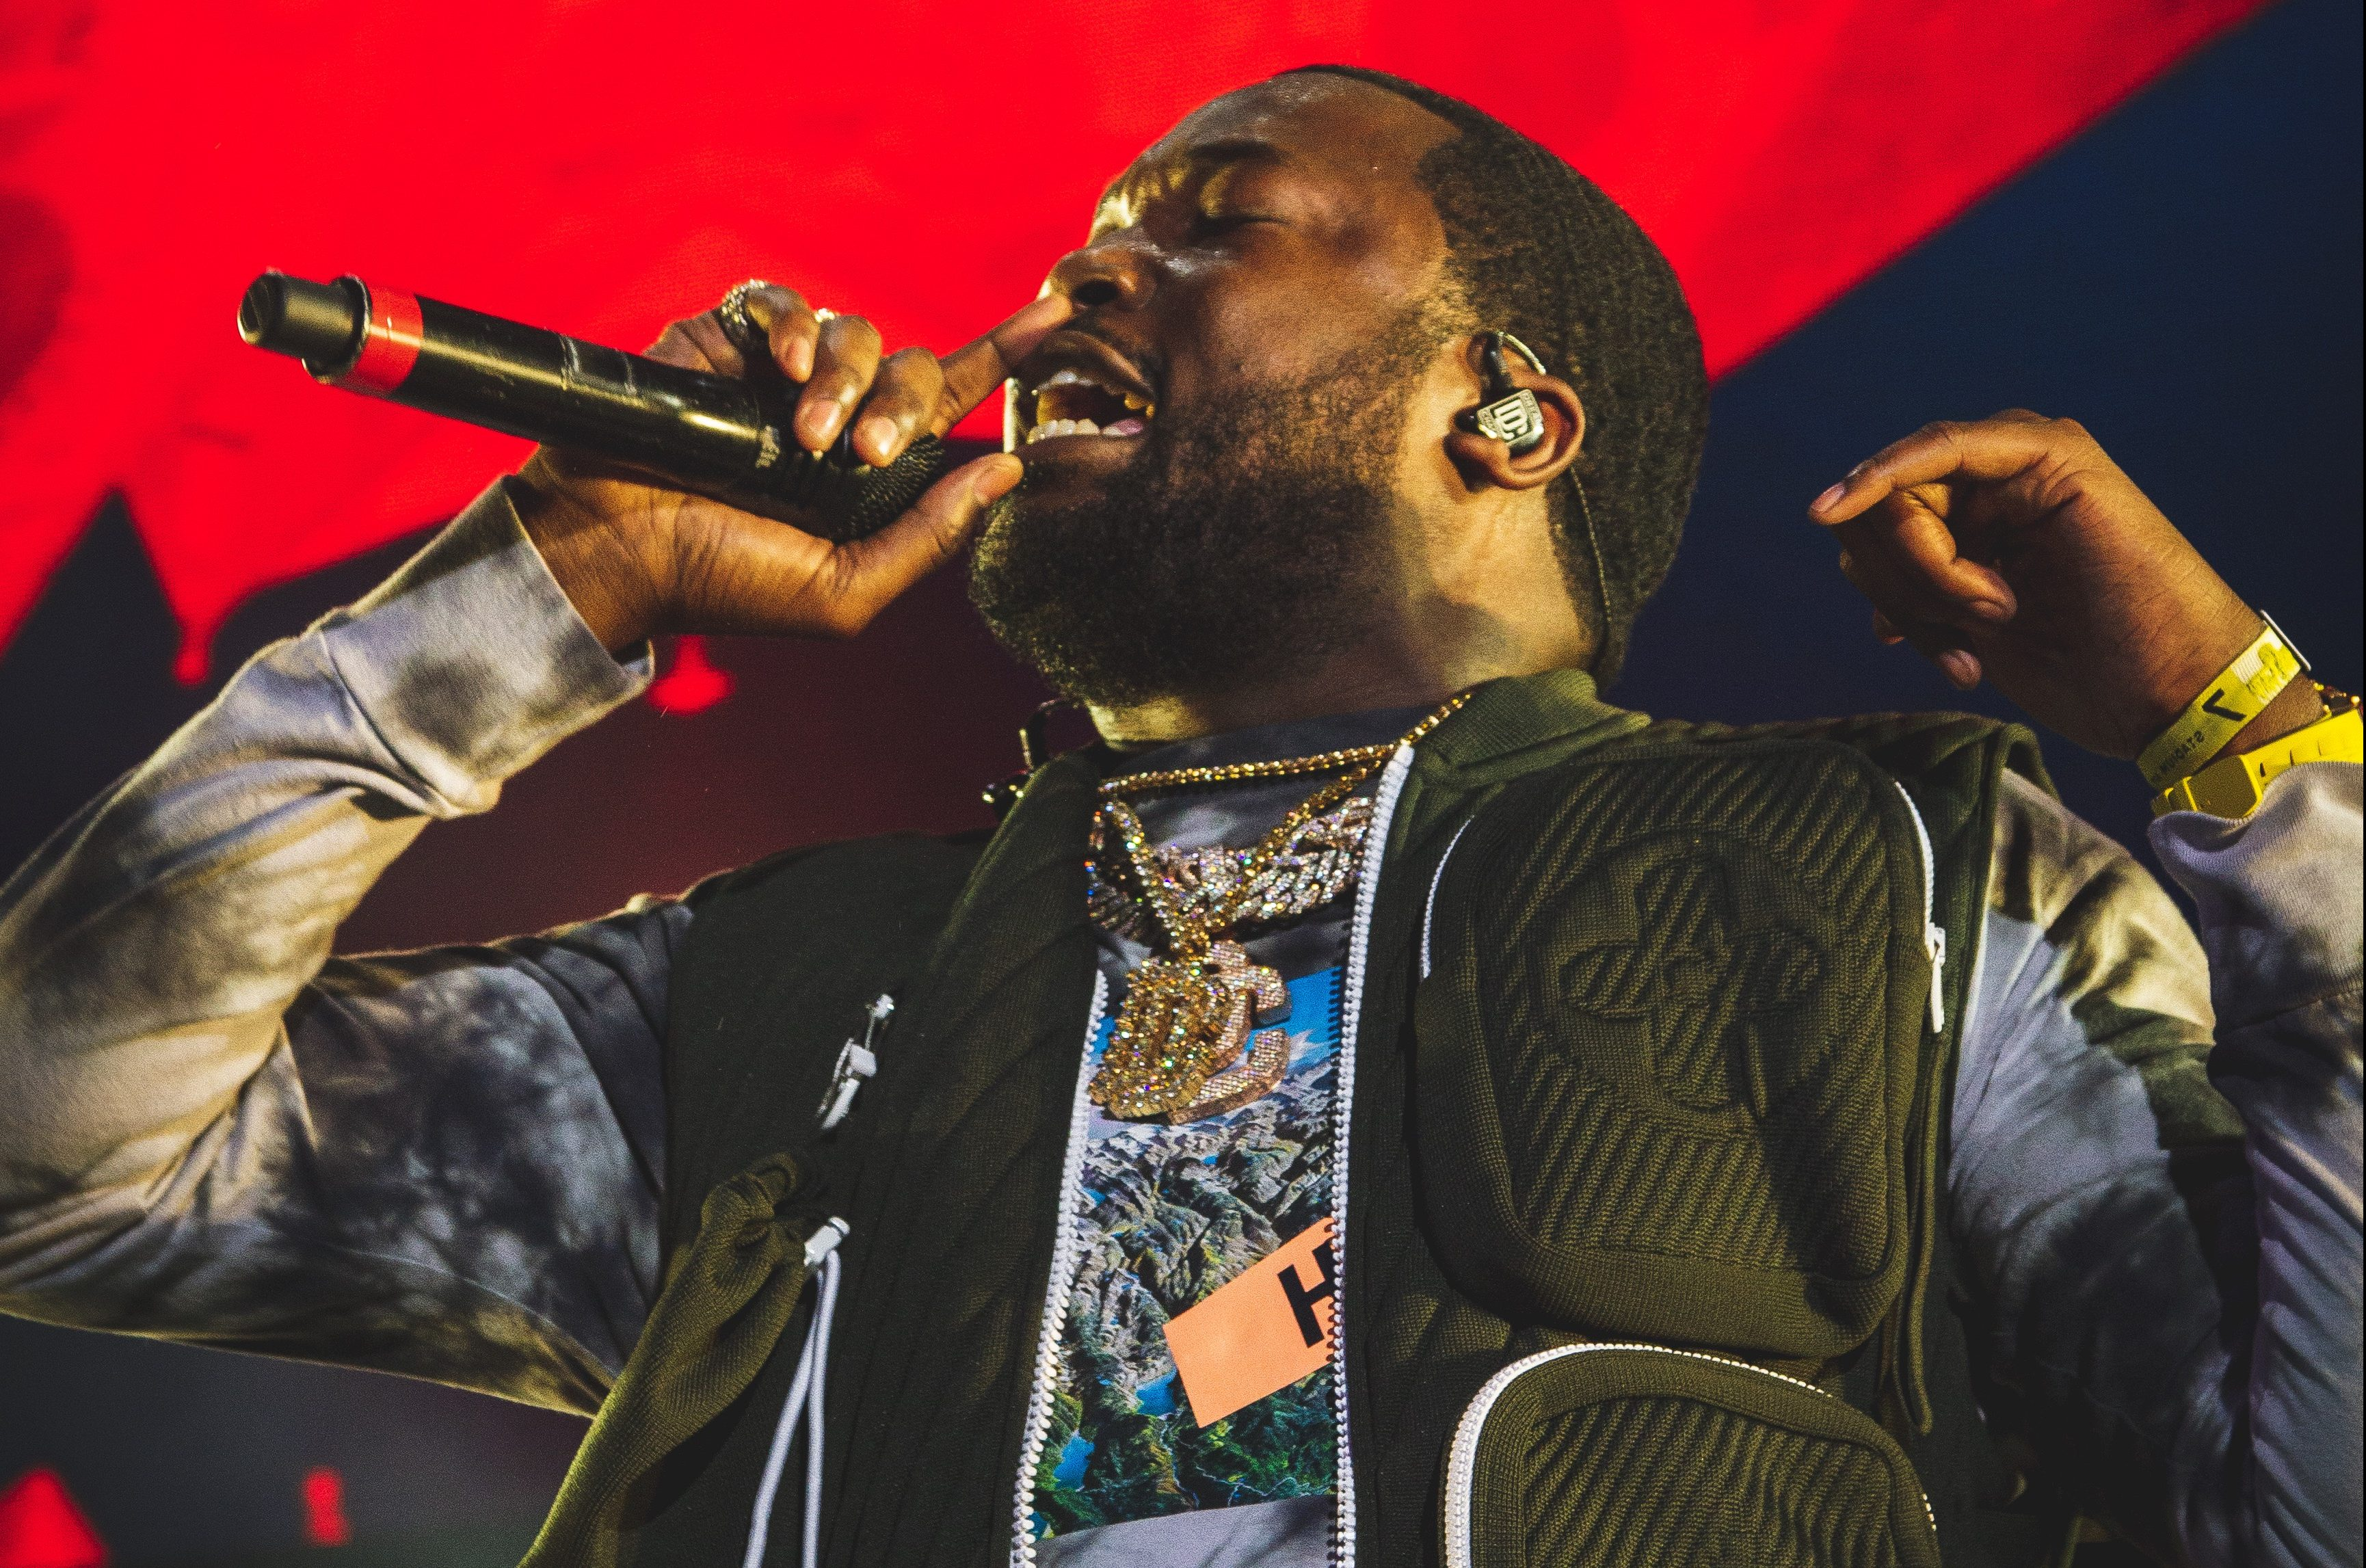 Meek Mill Says Gave Kids $20 Because He Didn't Want Them To Buy Weed